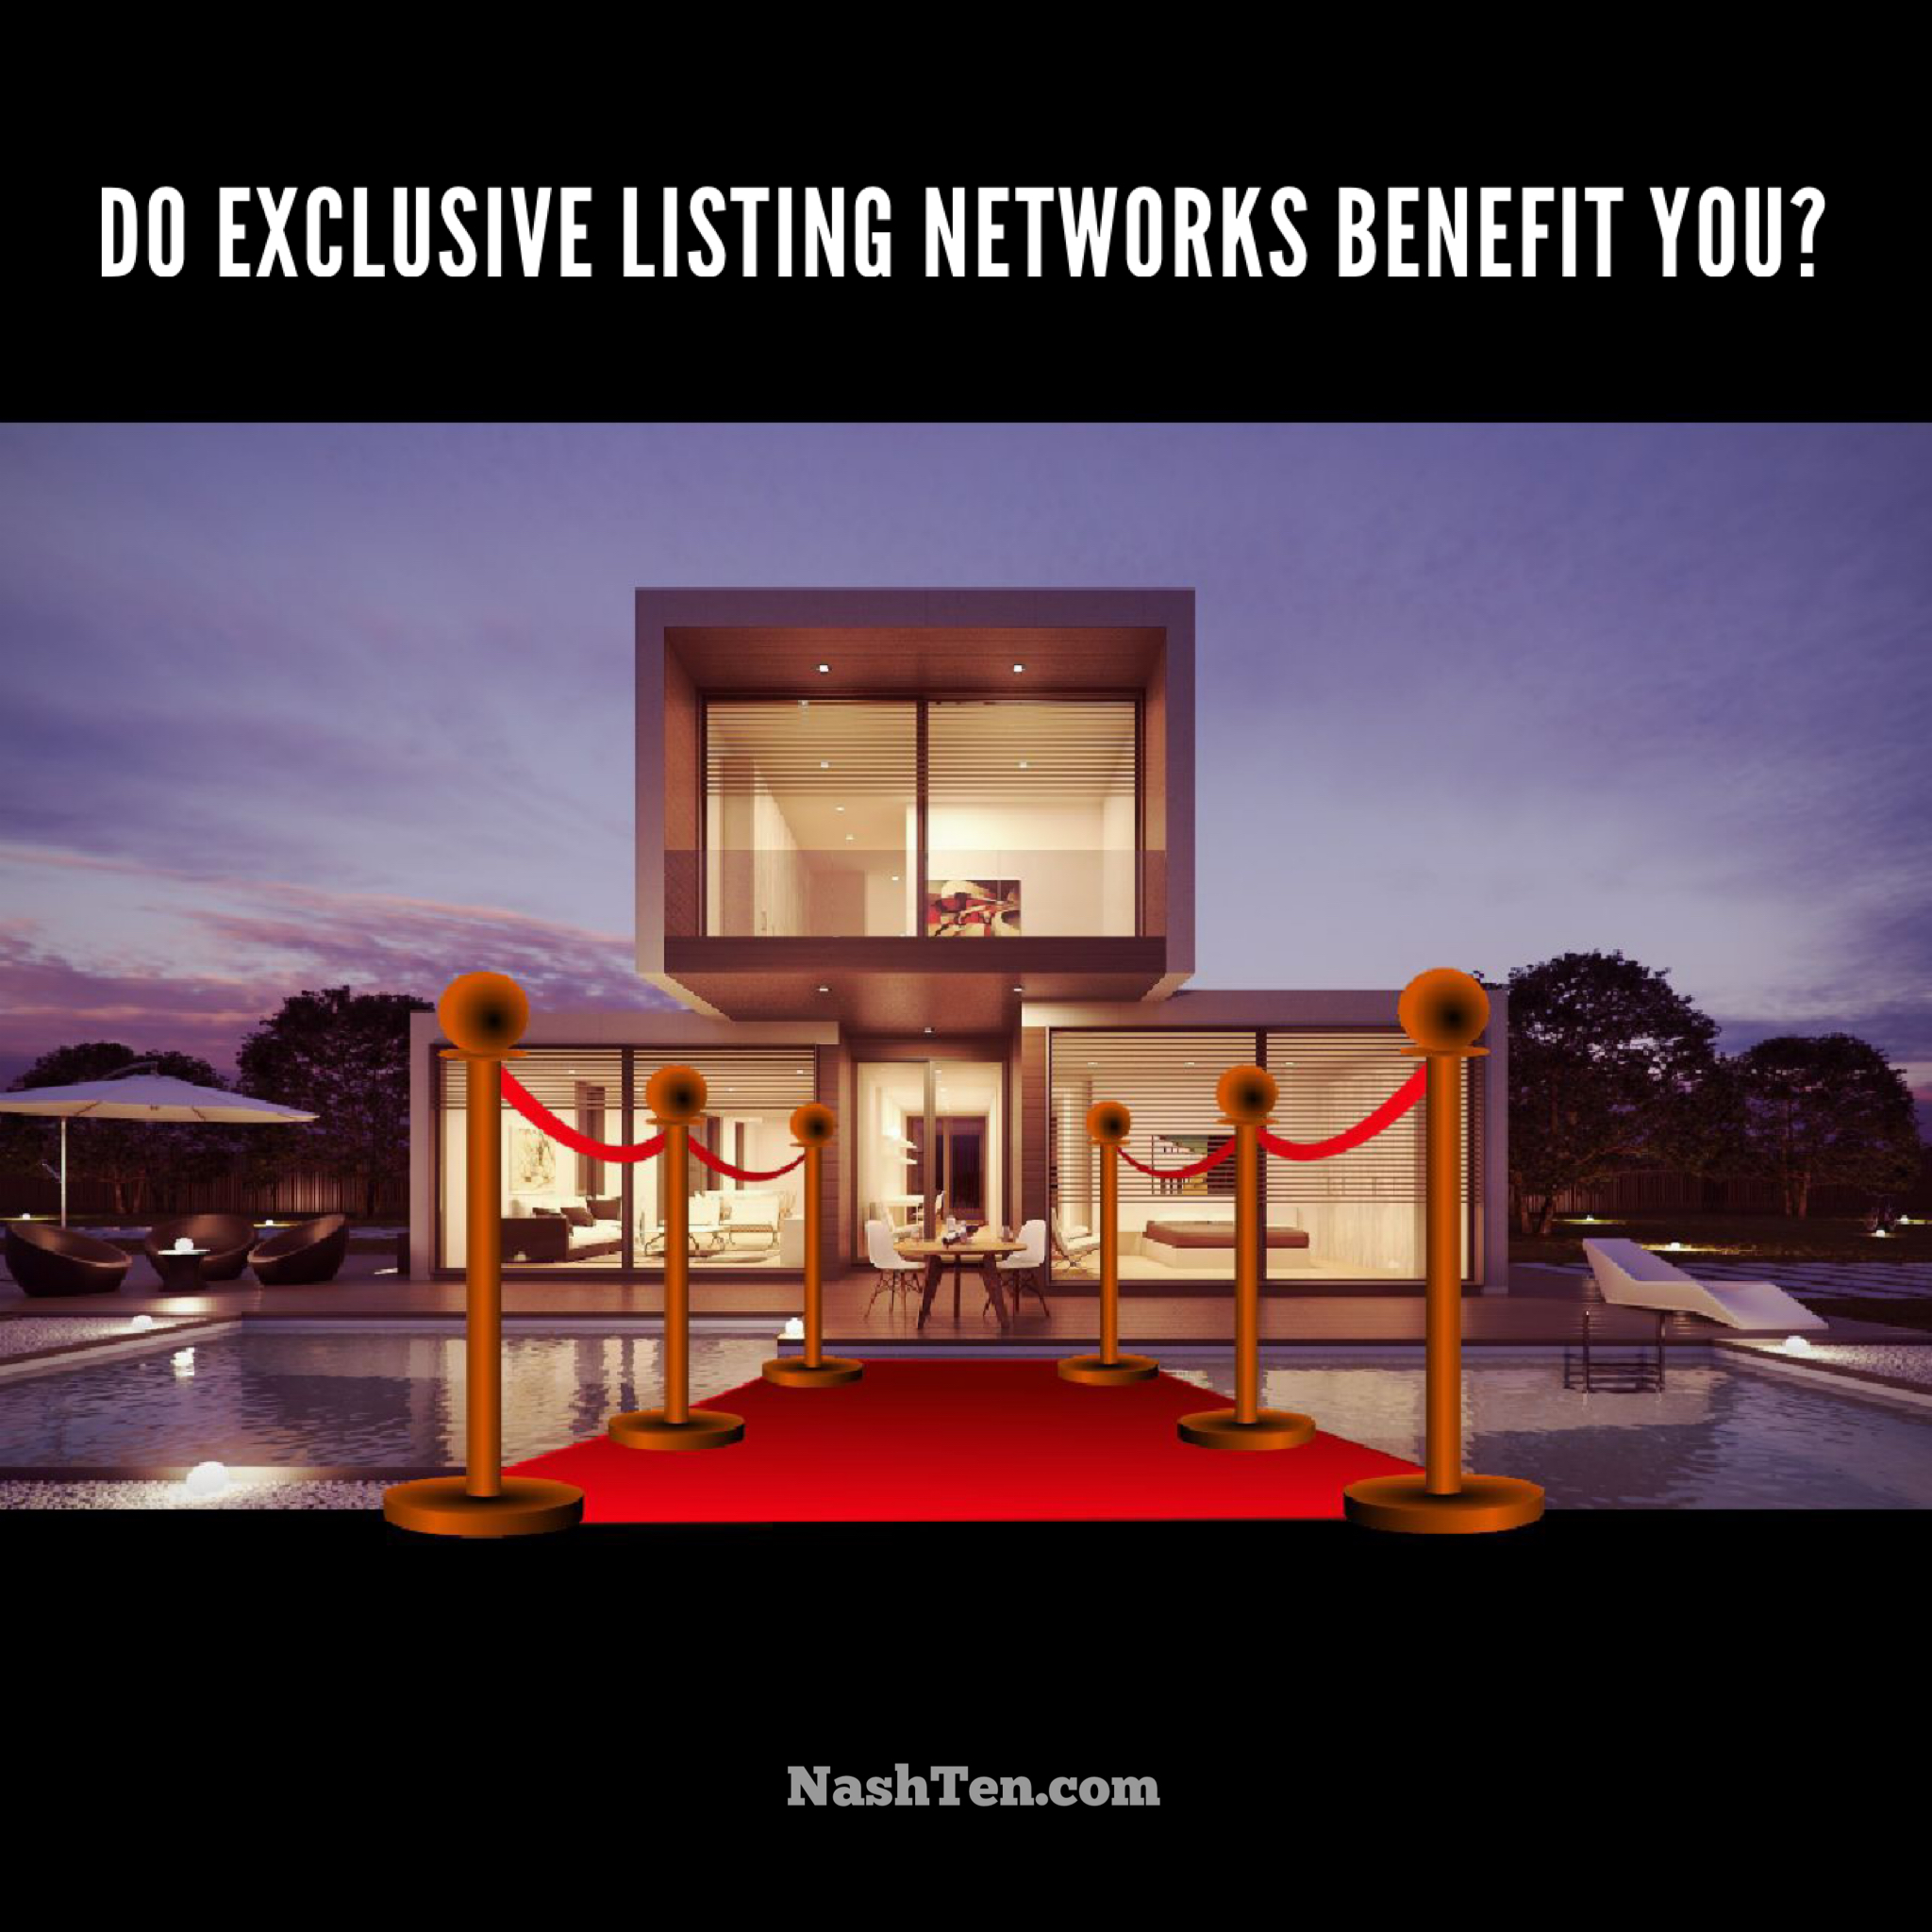 Do exclusive listing networks benefit you?